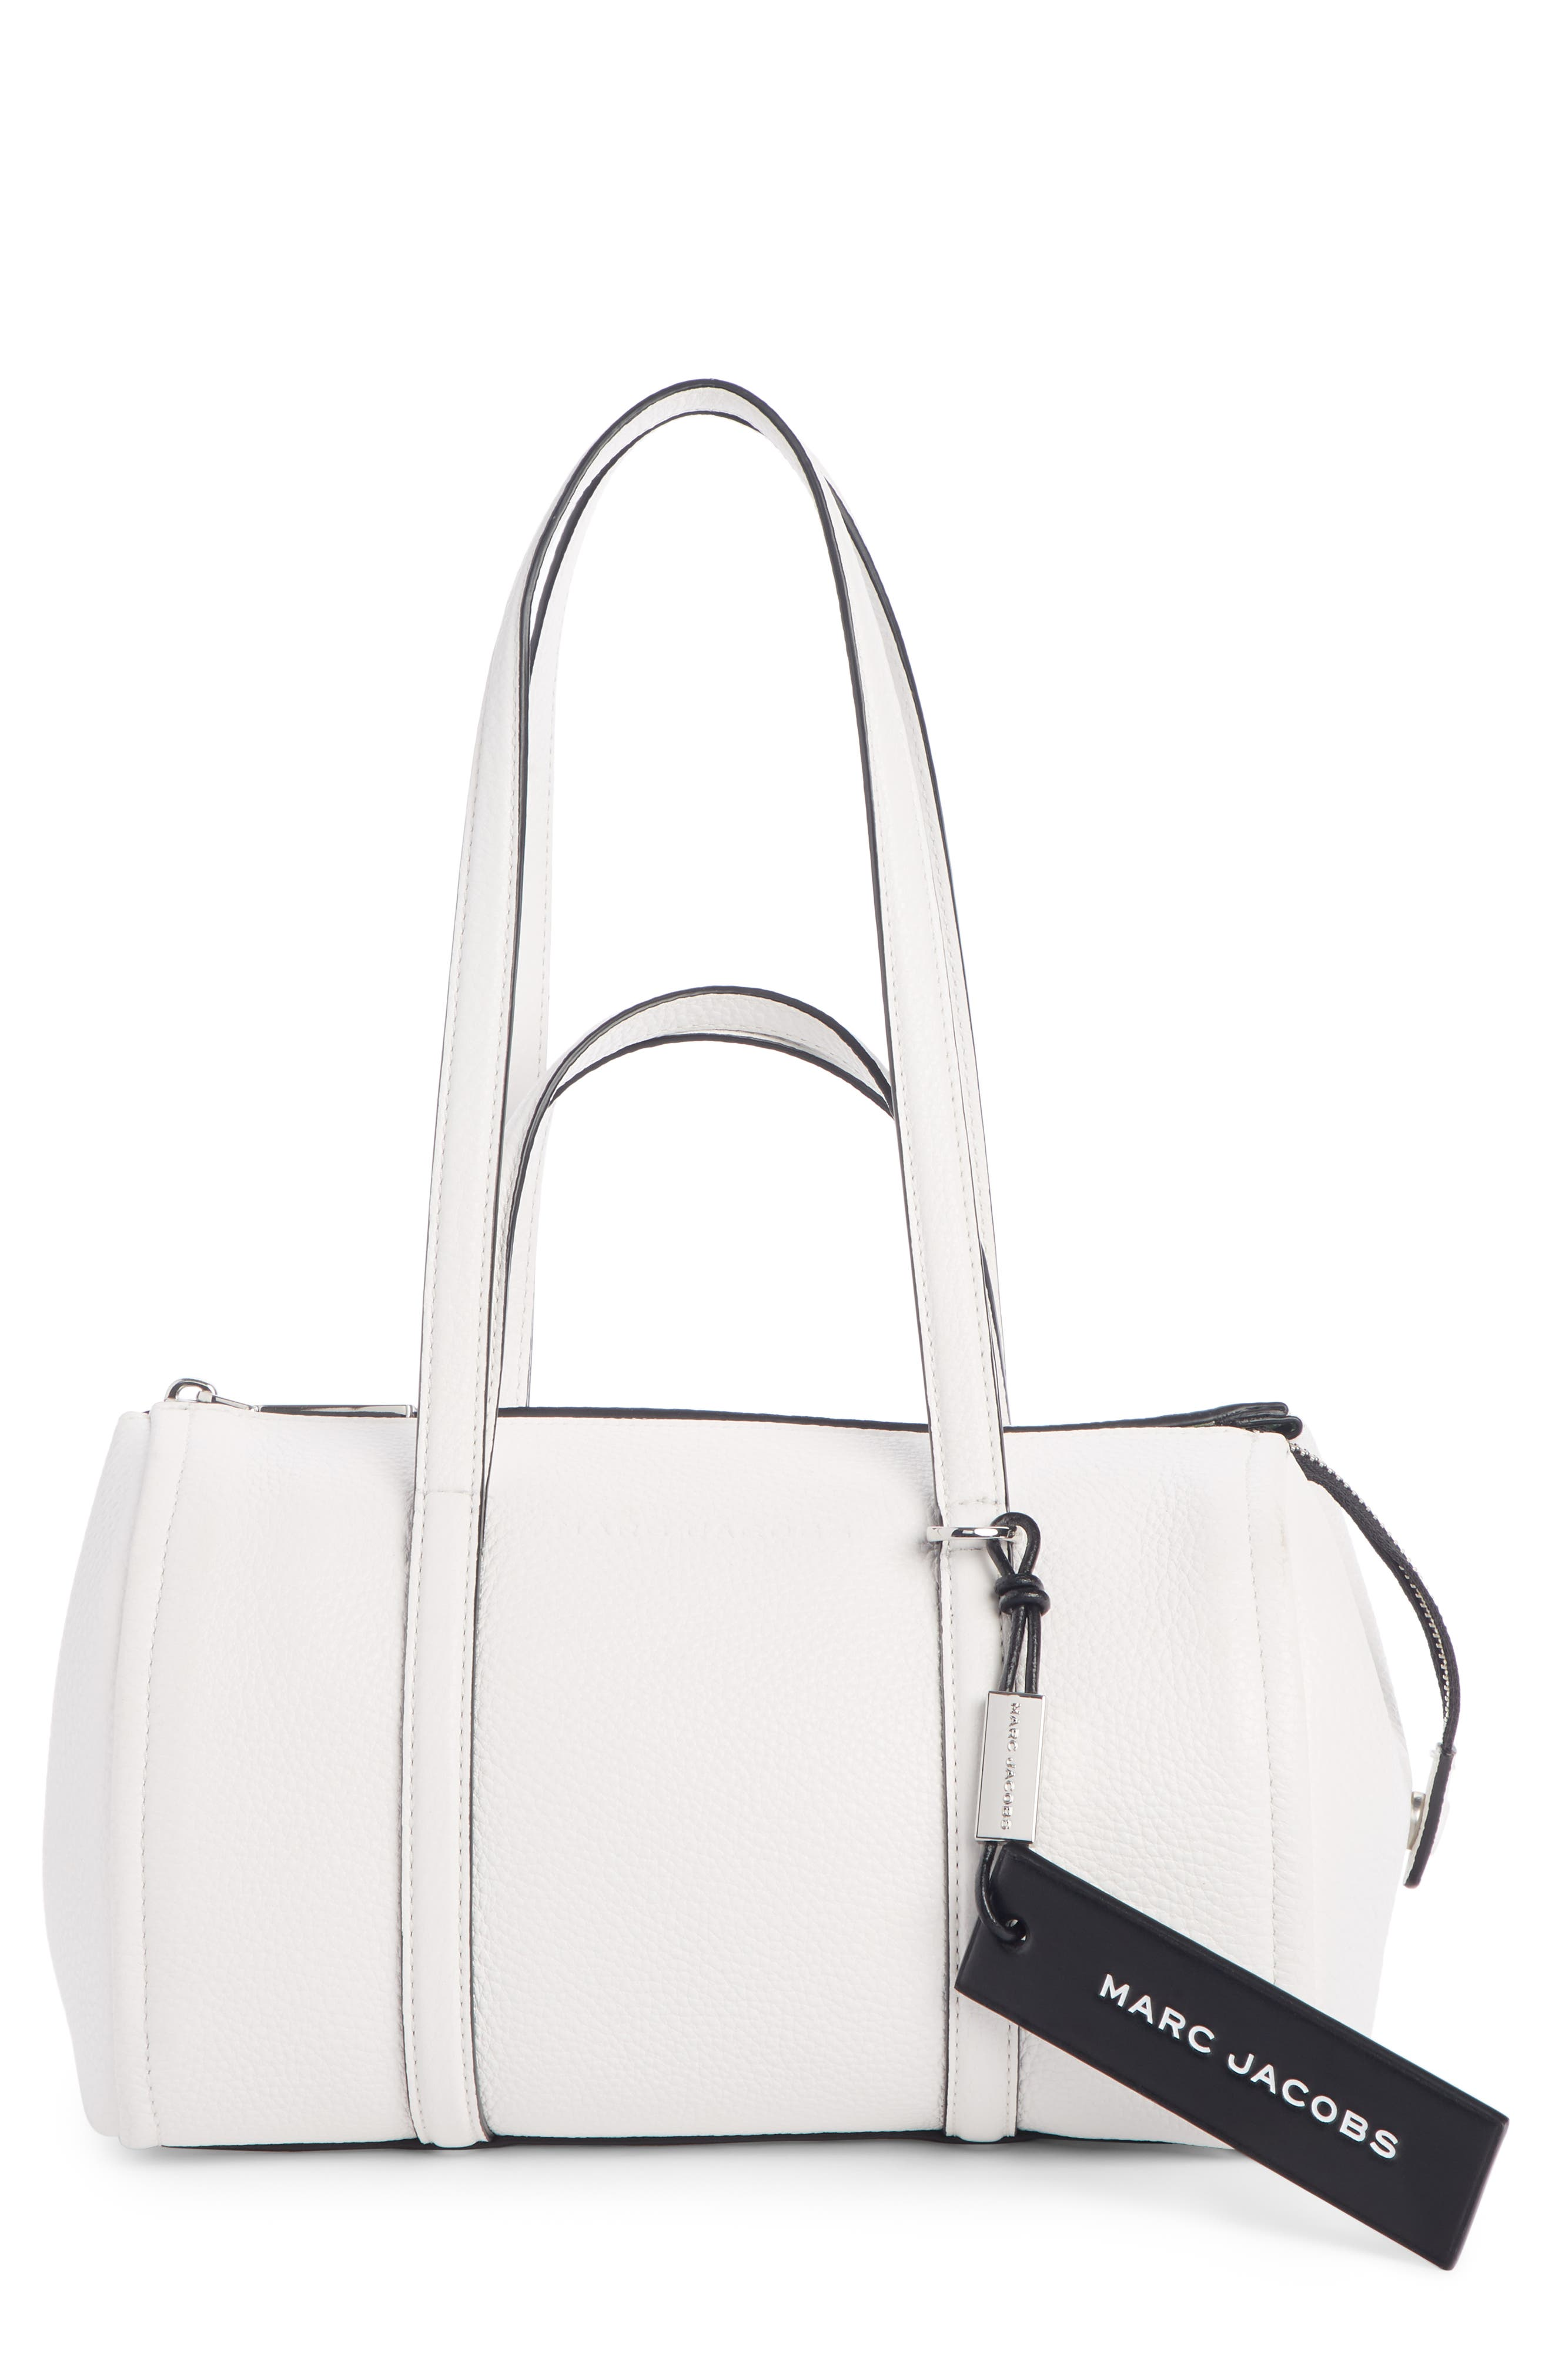 Image of THE MARC JACOBS The Tag 26 Bauletto Leather Bag